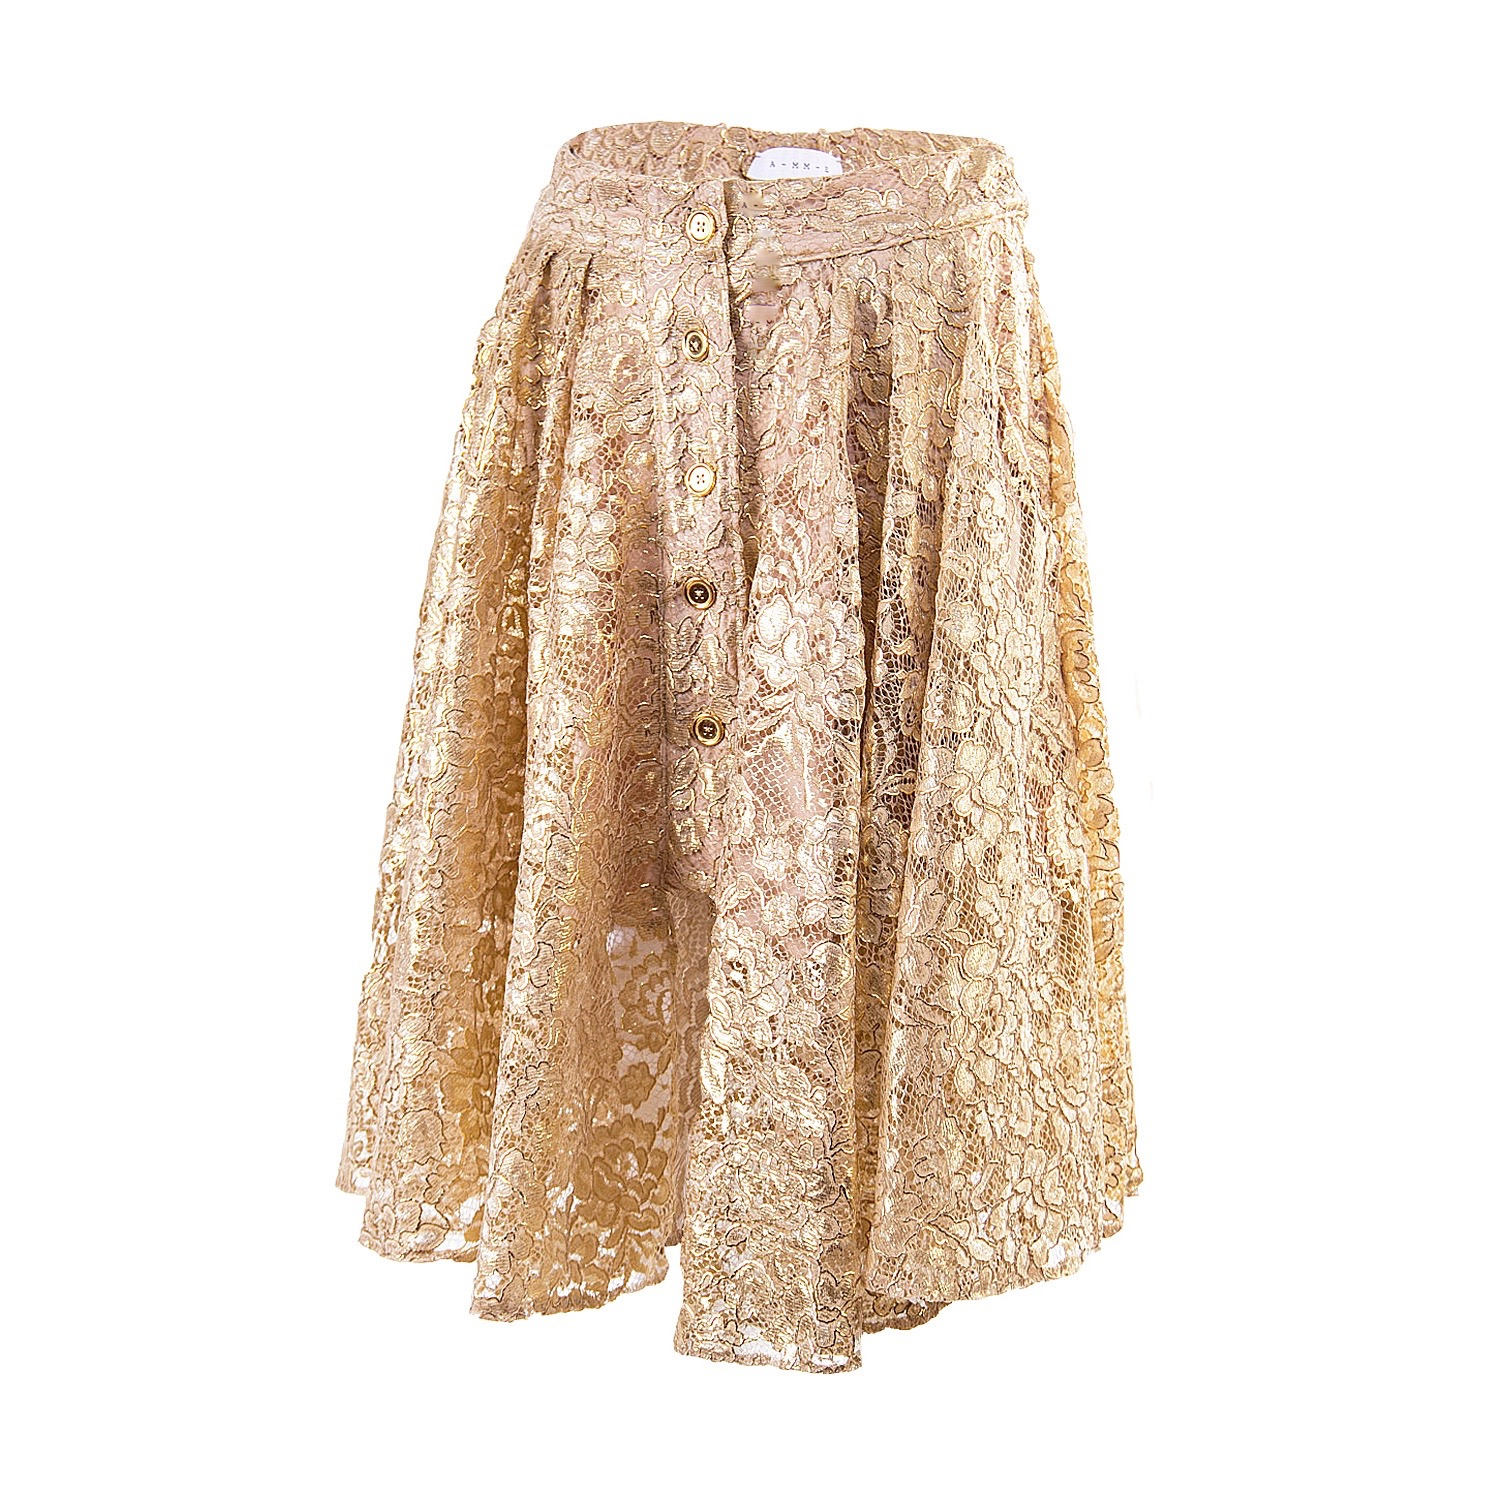 The Gold Lace Riding Skirt